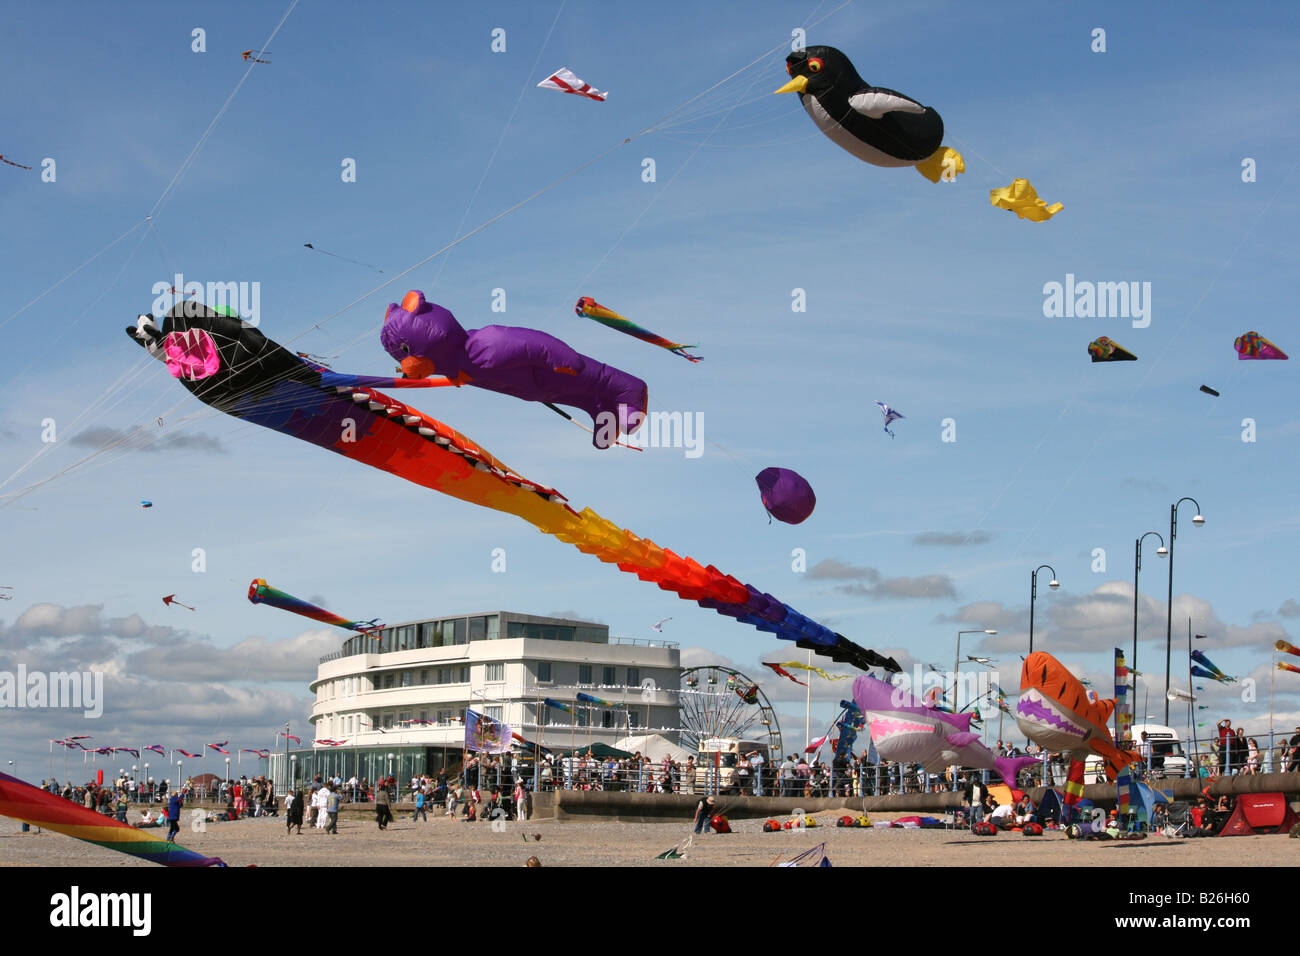 View from the beach to Morecambe Promenade and Midland Hotel during the Catch the Wind Kite Festival. - Stock Image